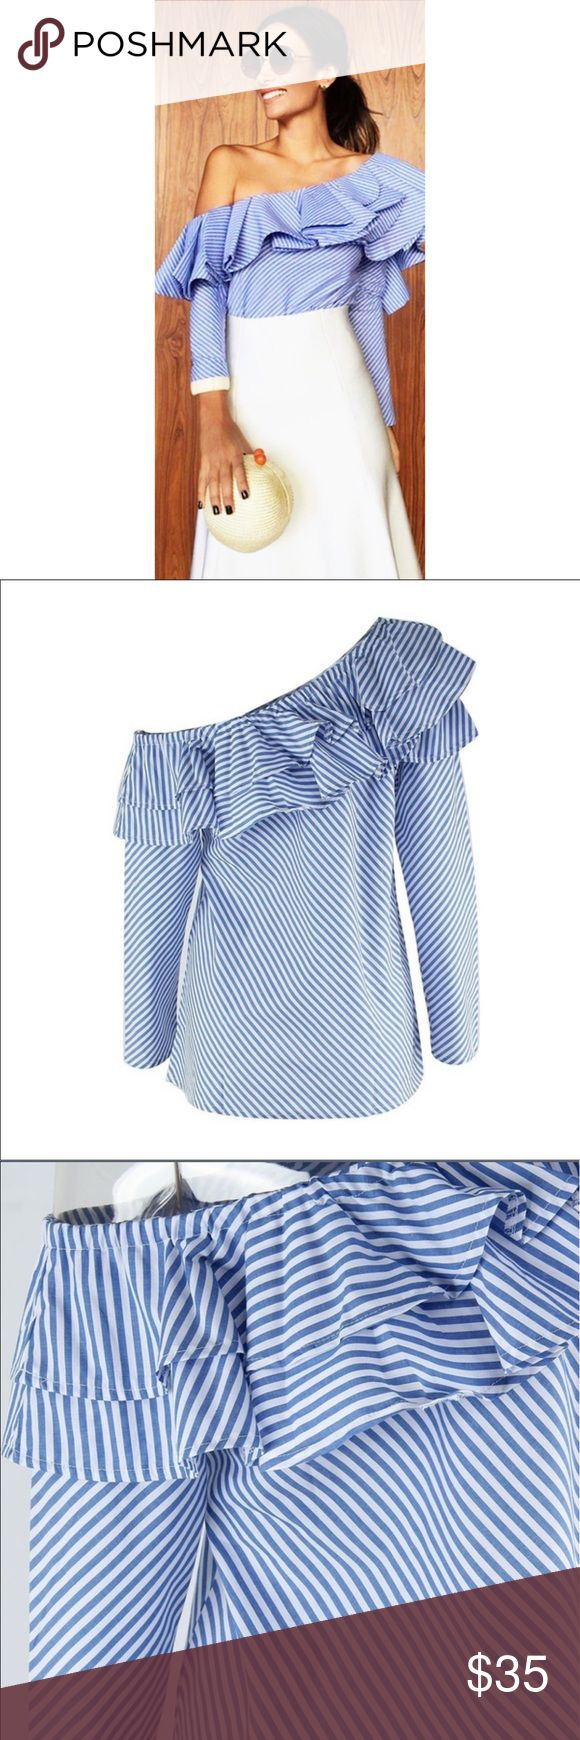 Long sleeve loose white and blue stripe blouse Brand new WOT long sleeve loose blouse. Perfect for summer, beautiful royal blue stripes. Fits S/M  Tags# Adidas/ American apparel / Ann Taylor/ Lilly Pulitzer / Calvin Klein/ Louboutin / Express/ Forever 21/ Free People/ Guess/ H&M/ Lululemon/ MARC JACOBS/ Michael Kors / Nike/ Nordstrom/ PINK/ Urban Outfitters/ Zara/ 7 for all Mankind/ Kate Spade Michael Kors Tops Blouses